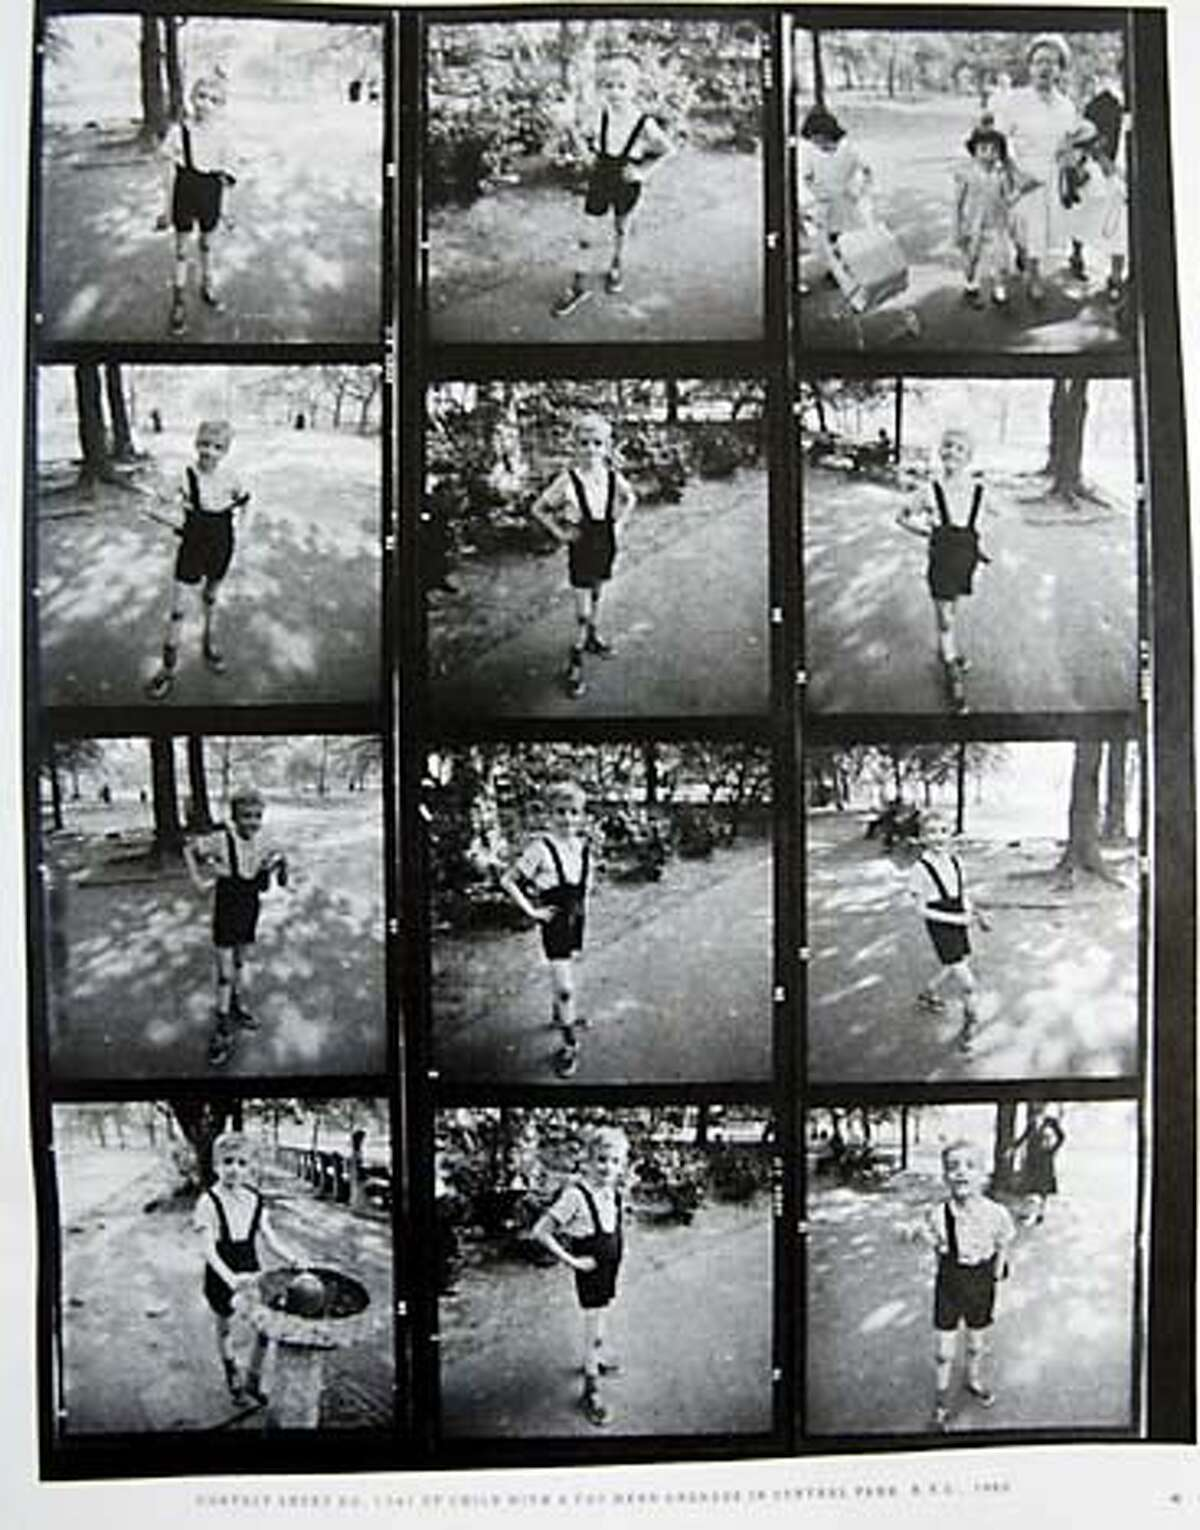 arbus0118_cs.jpg Event on 10/6/03 in . A contact sheet of images published in the New York Times Sunday Magazine features Colin Wood. Forty years ago, Wood was the subject of these photos taken by Diane Arbus. He was known as the child with a toy hand grenade in Central Park, N.Y.C., 1962. SFMOMA is having a Diane Arbus retrospective. / The Chronicle